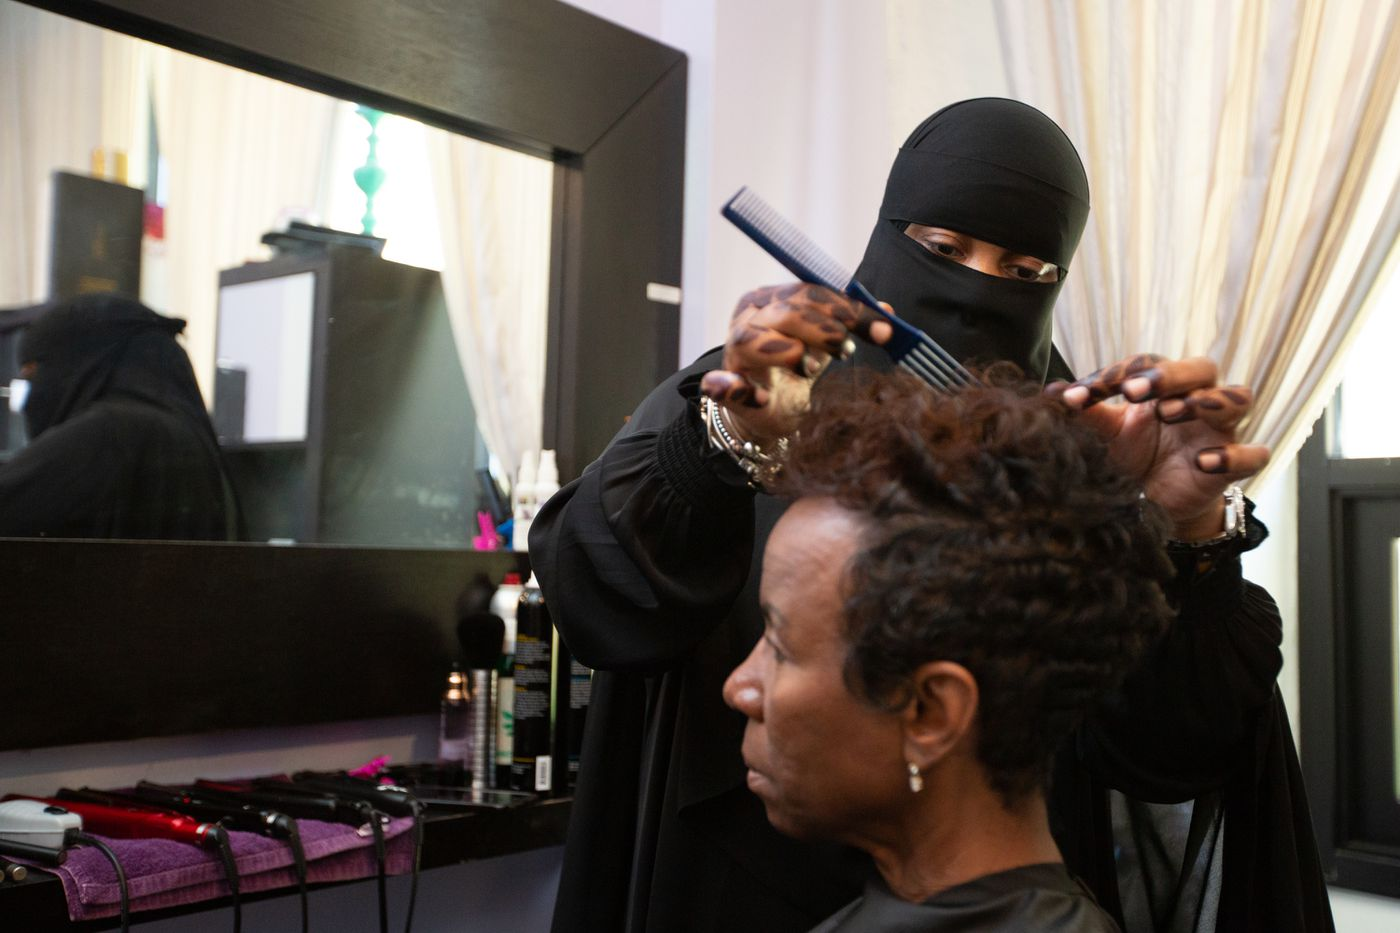 At East Falls salon, Muslim women relax, uncover in comfort